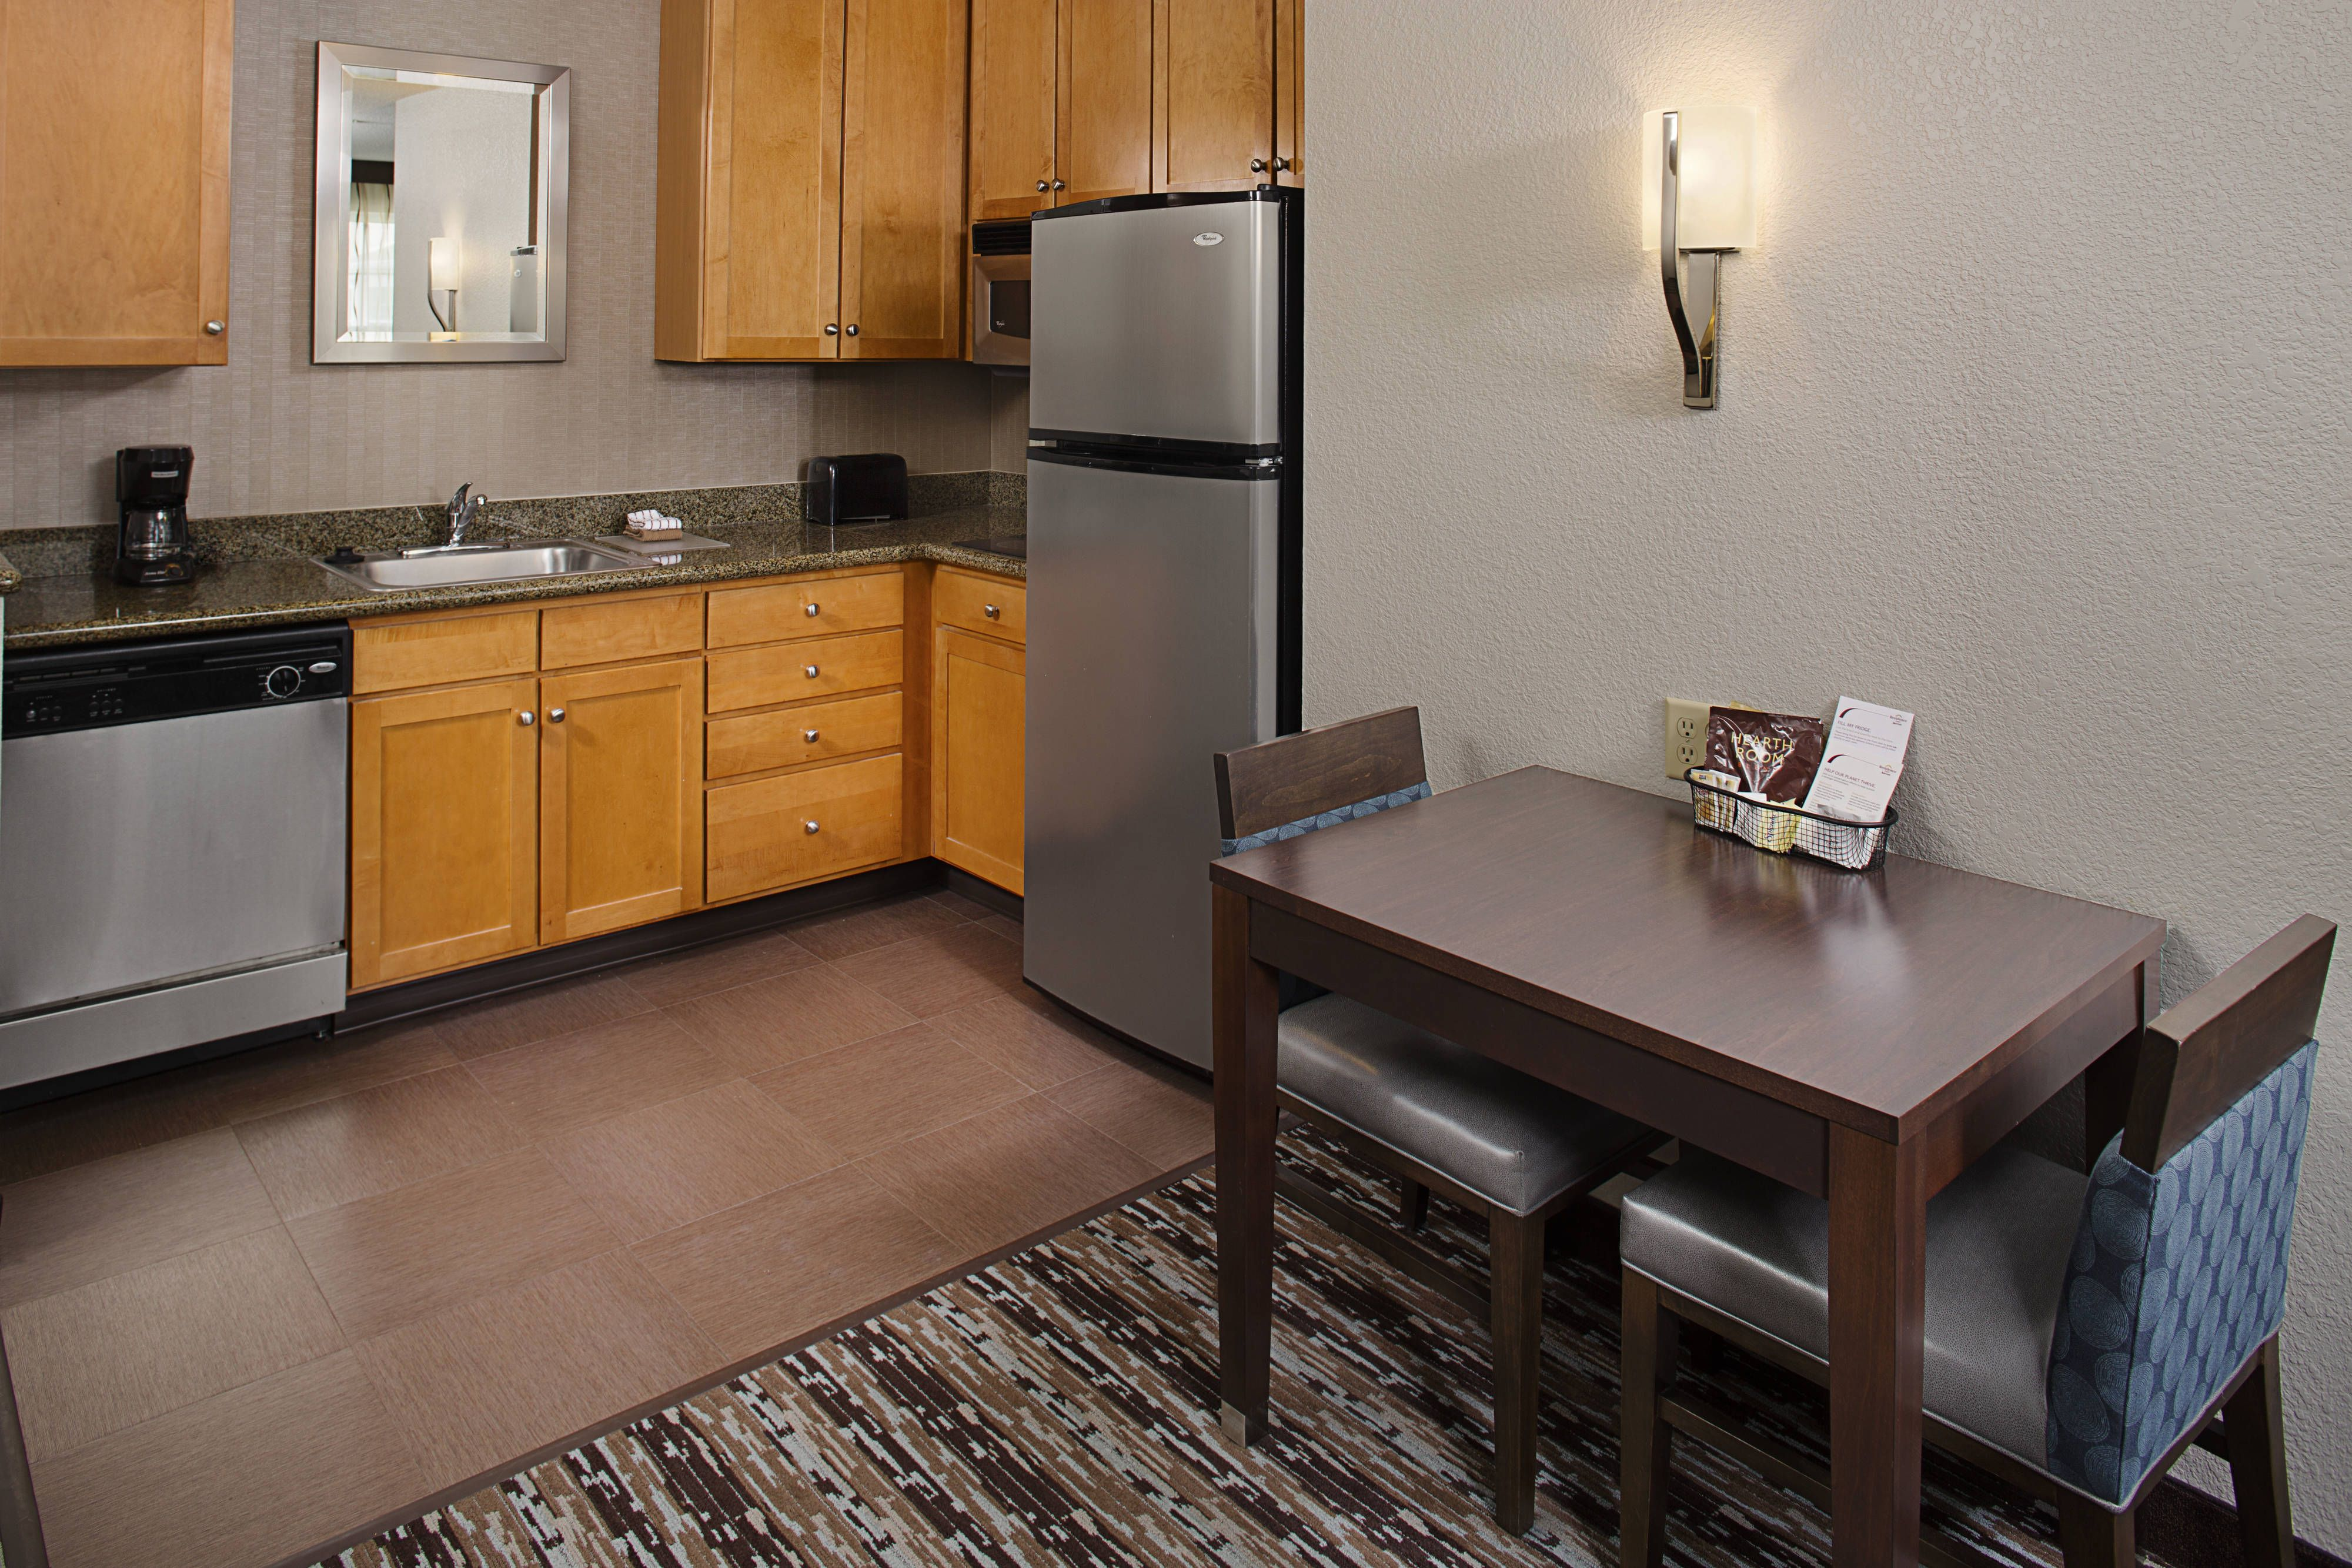 Residence Inn Worcester Studio With Images Residences Kitchen Cabinets Worcester